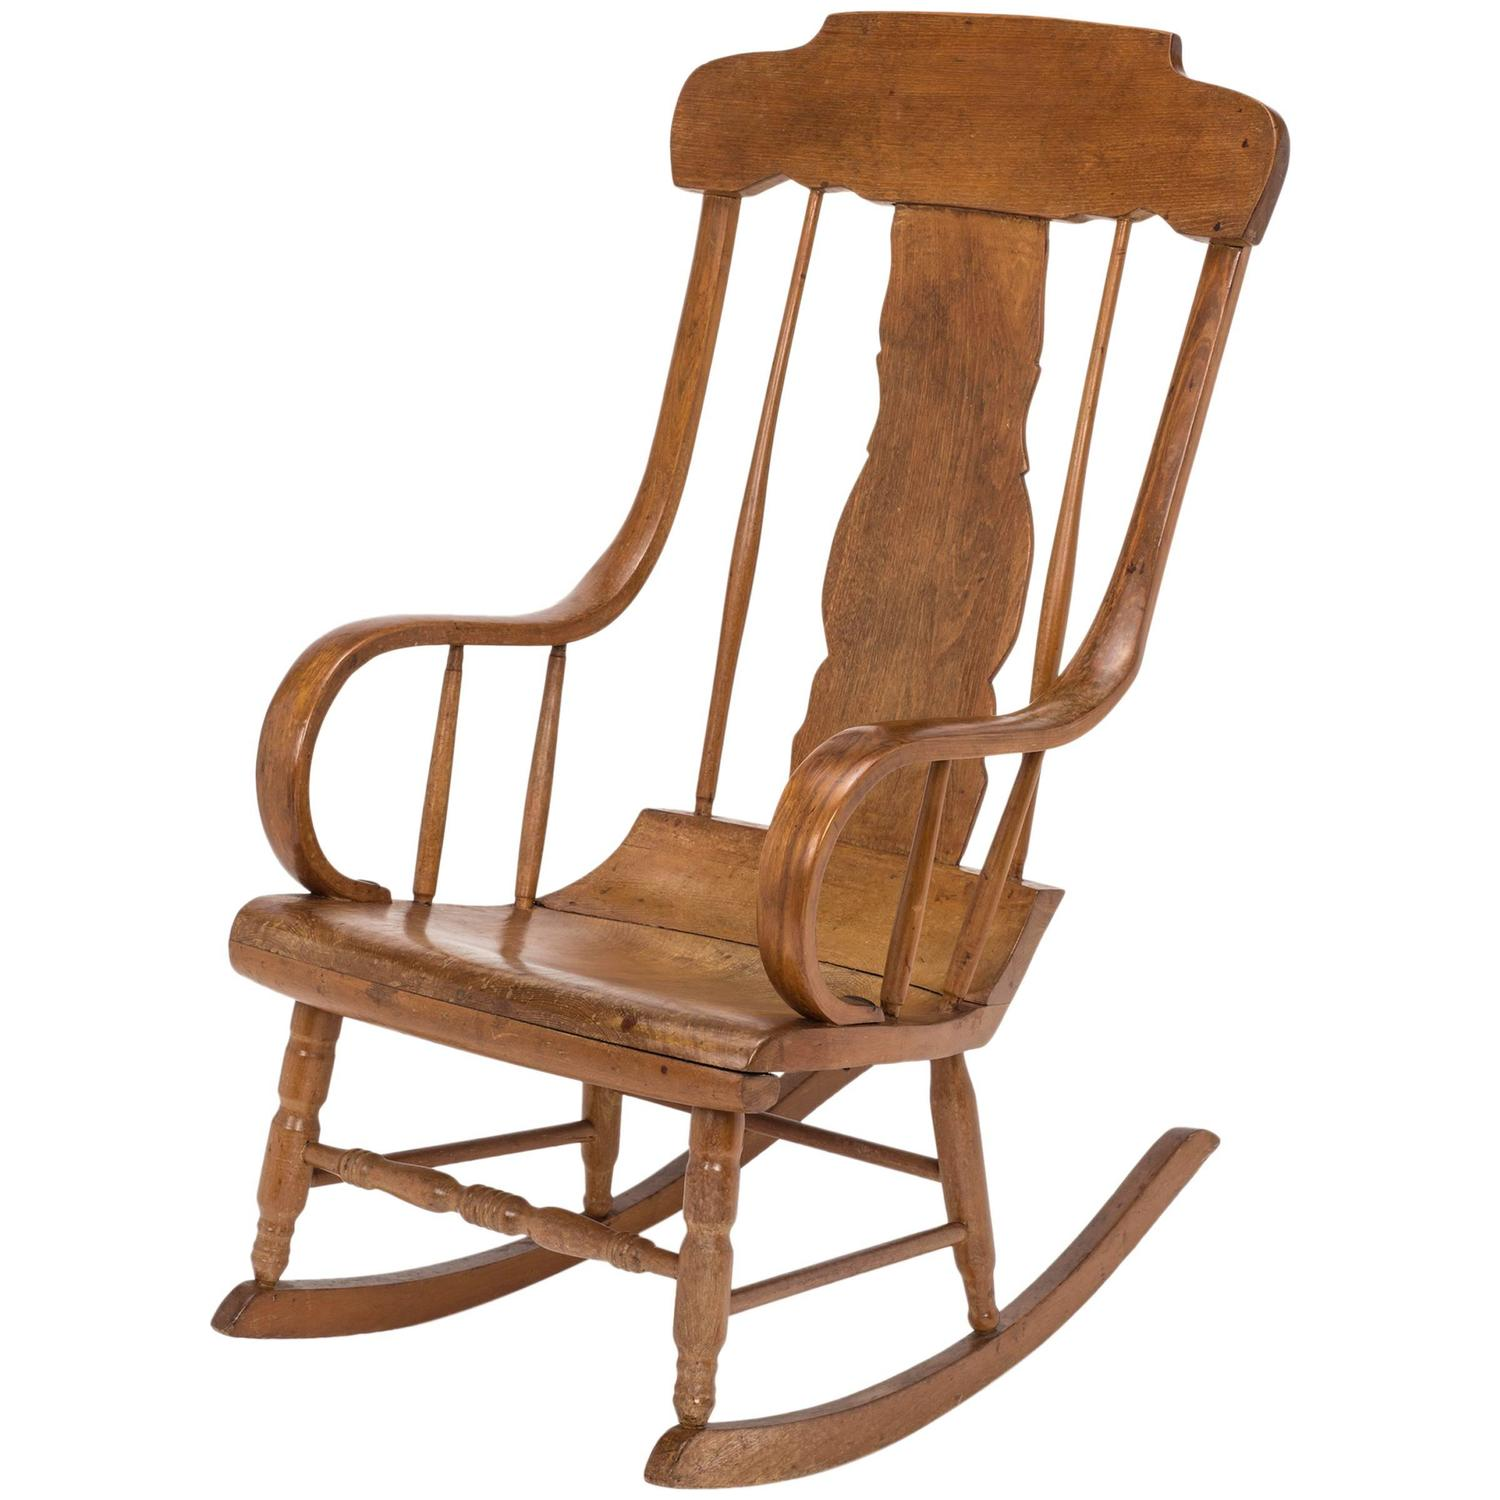 19th Century Rocking Chairs 79 For Sale at 1stdibs